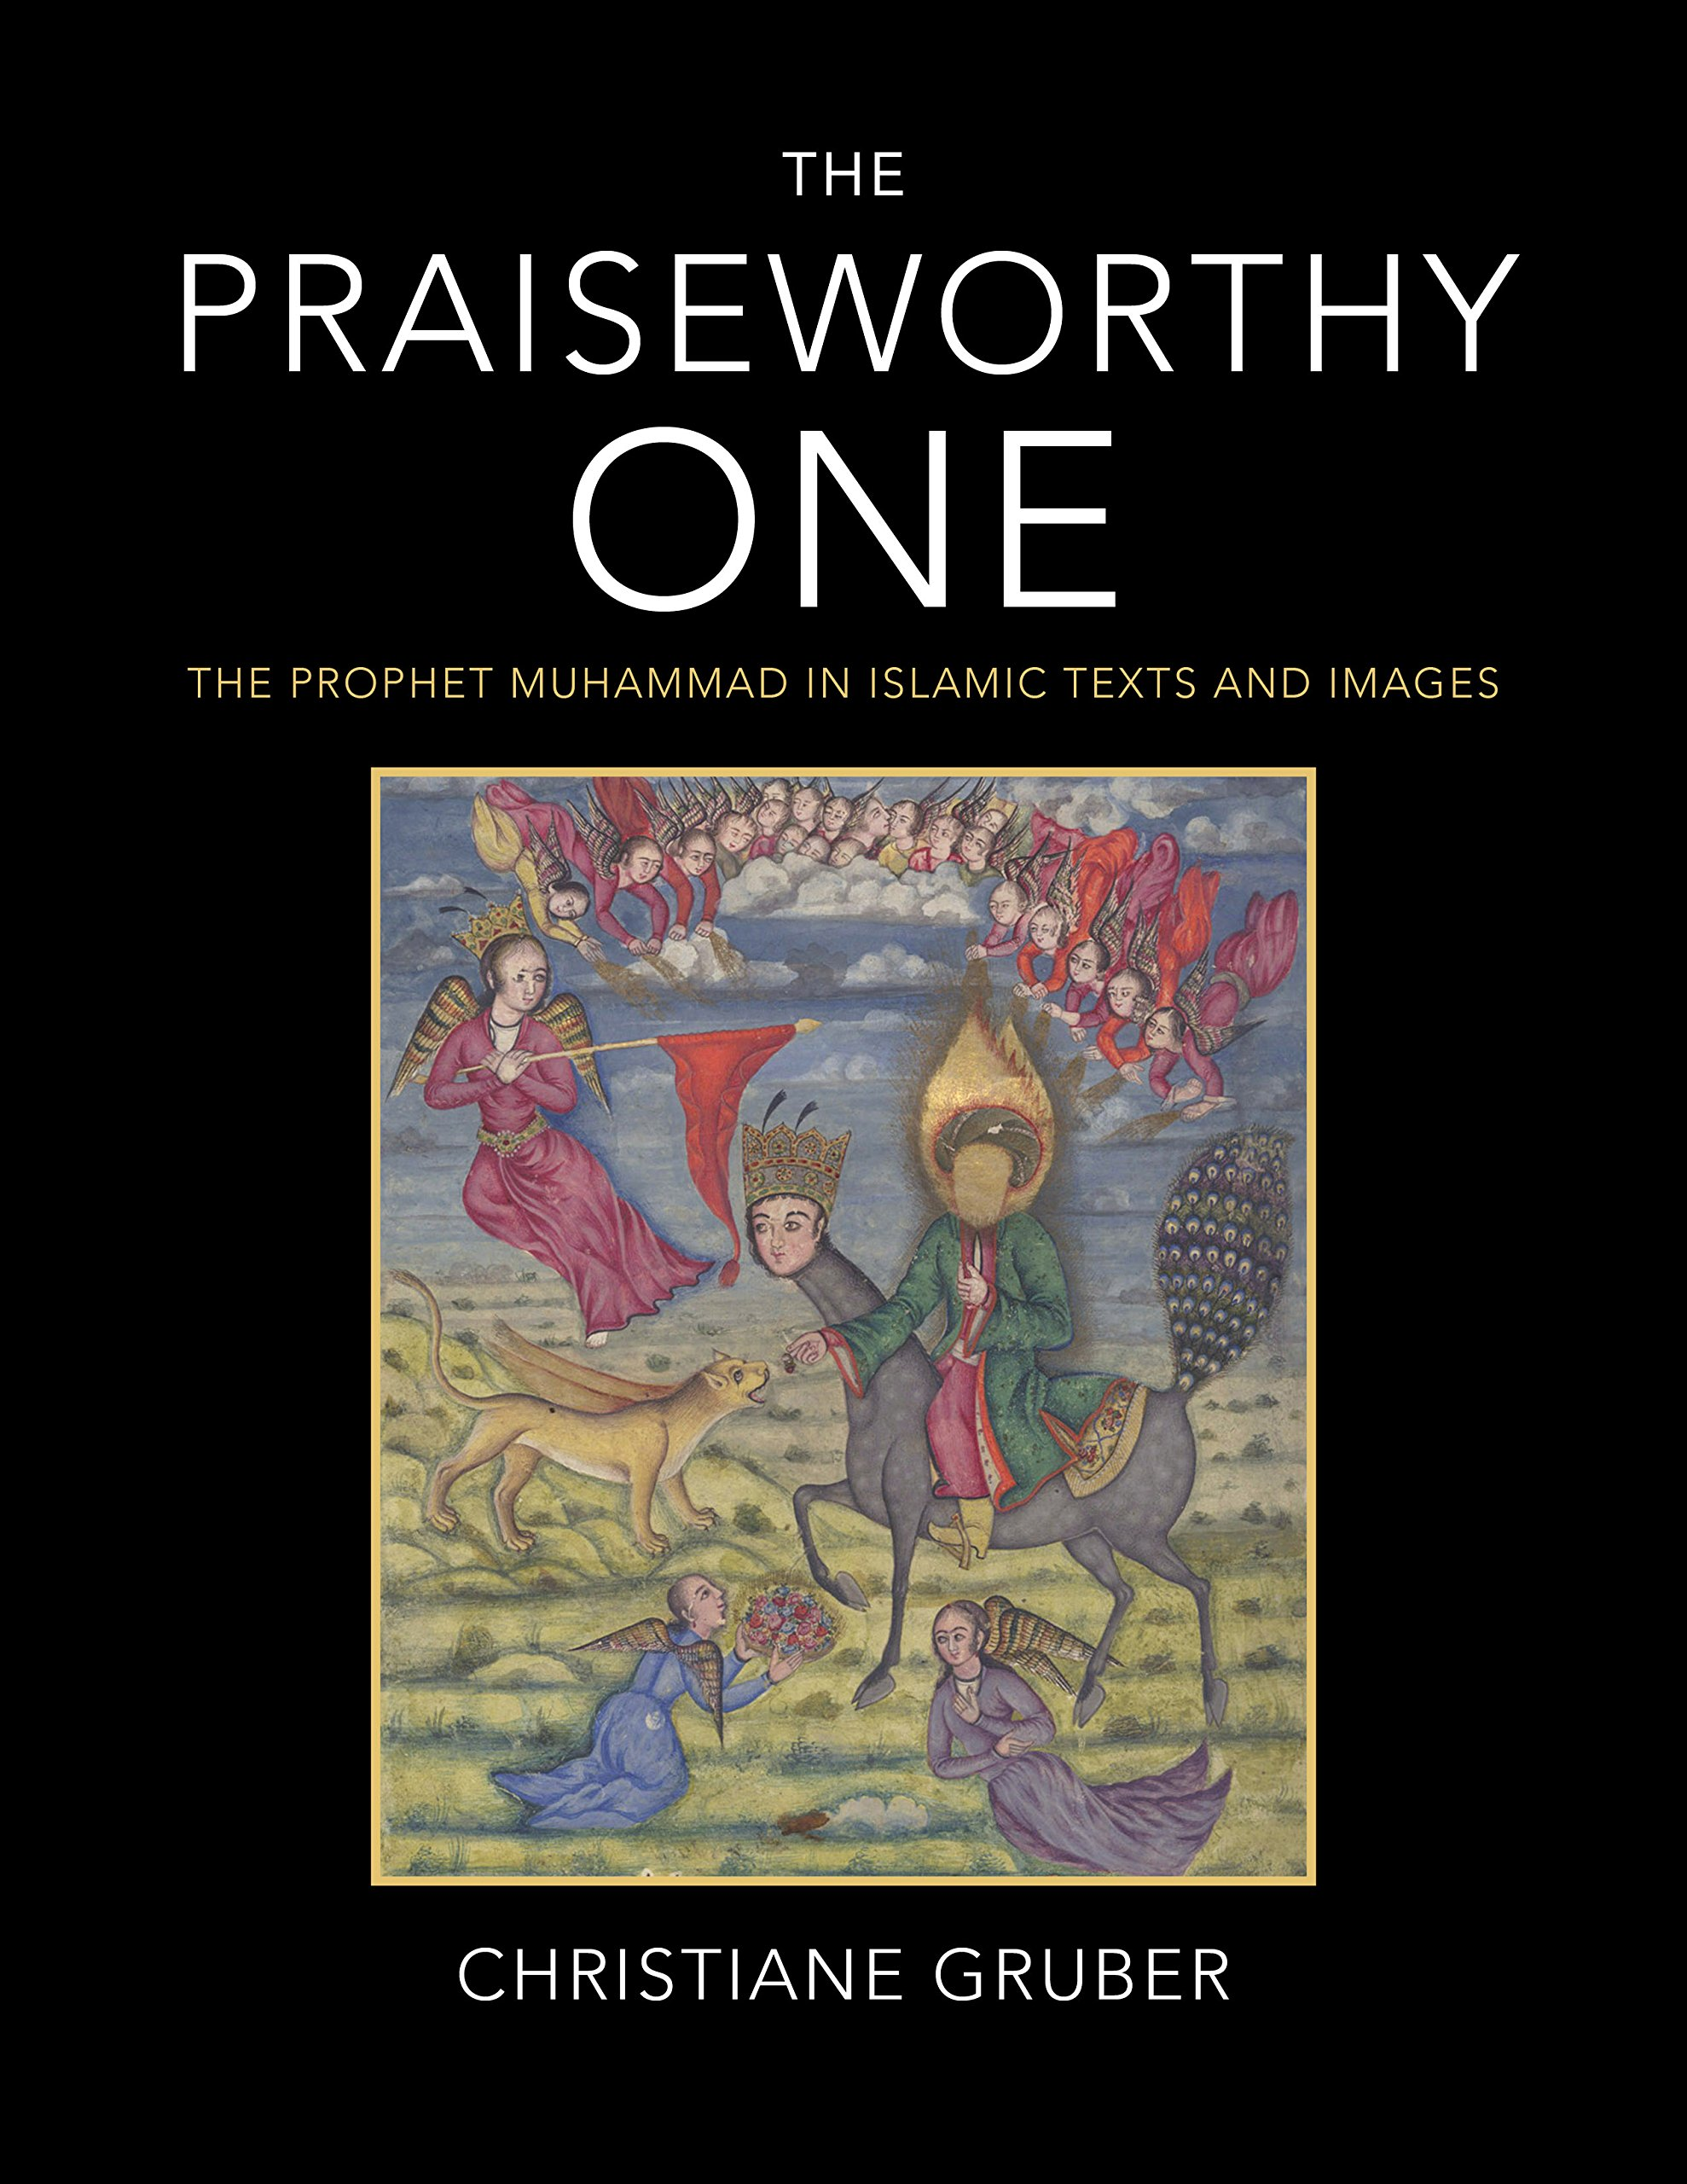 The Praiseworthy One: The Prophet Muhammad in Islamic Texts